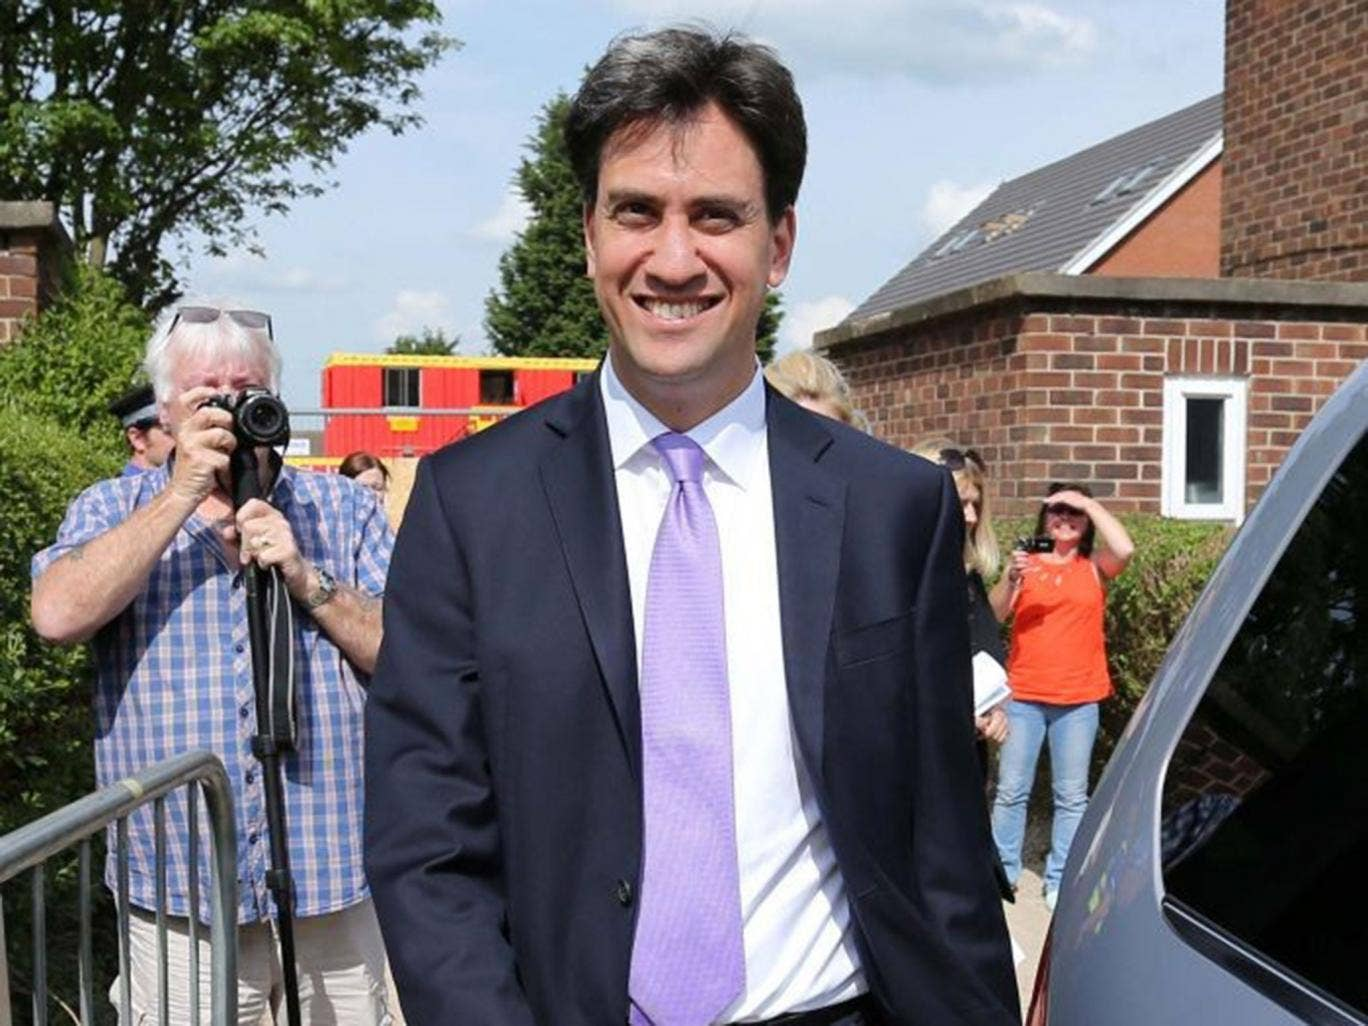 Ed Miliband will have no chance of making it to Downing Street unless he wins in Thurrock, where the Tories hold the parliamentary seat by a tiny majority